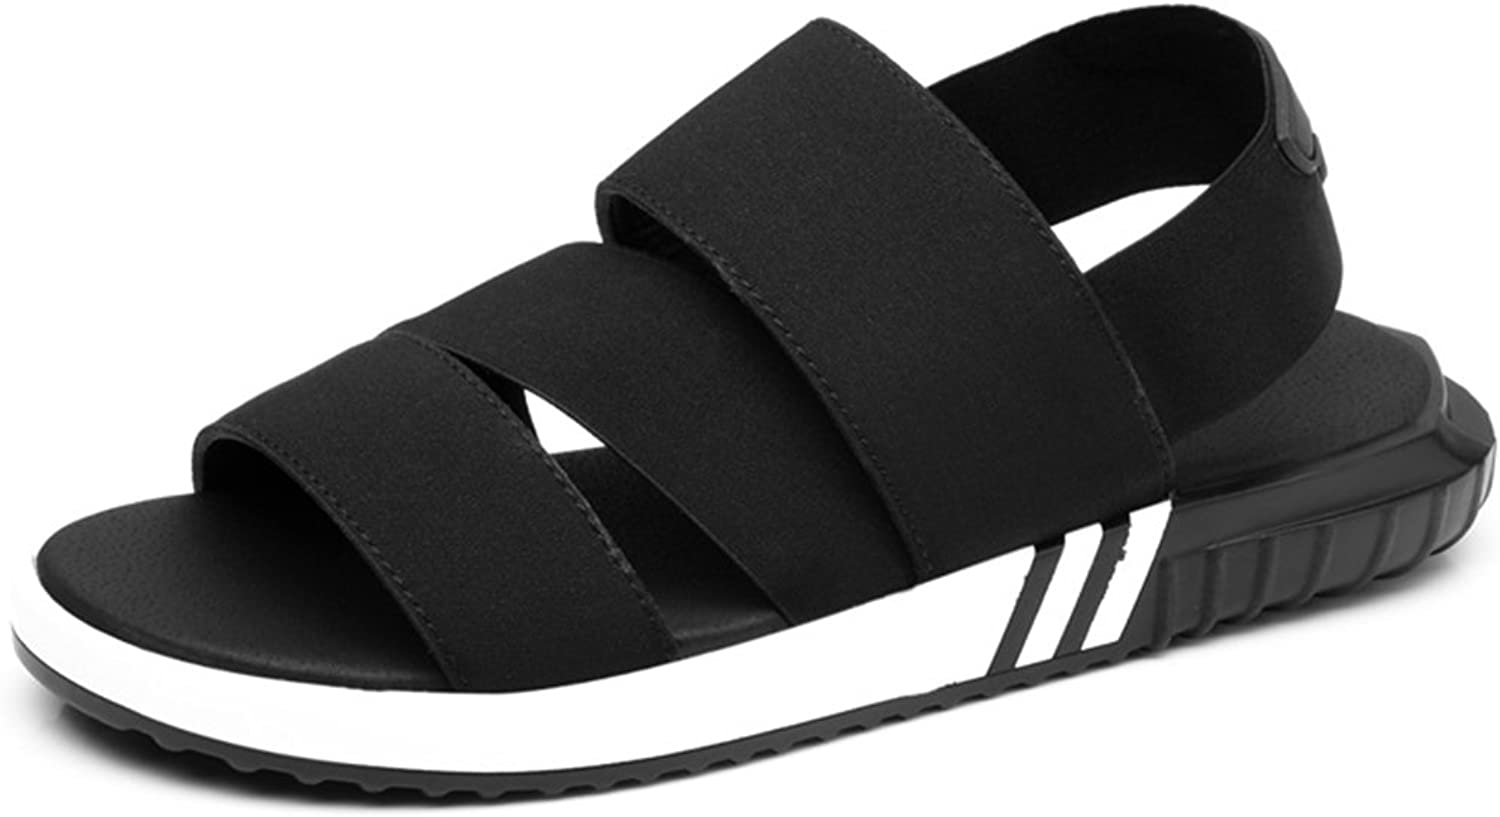 Minotta Women's Girl's Satin Summer Sandals